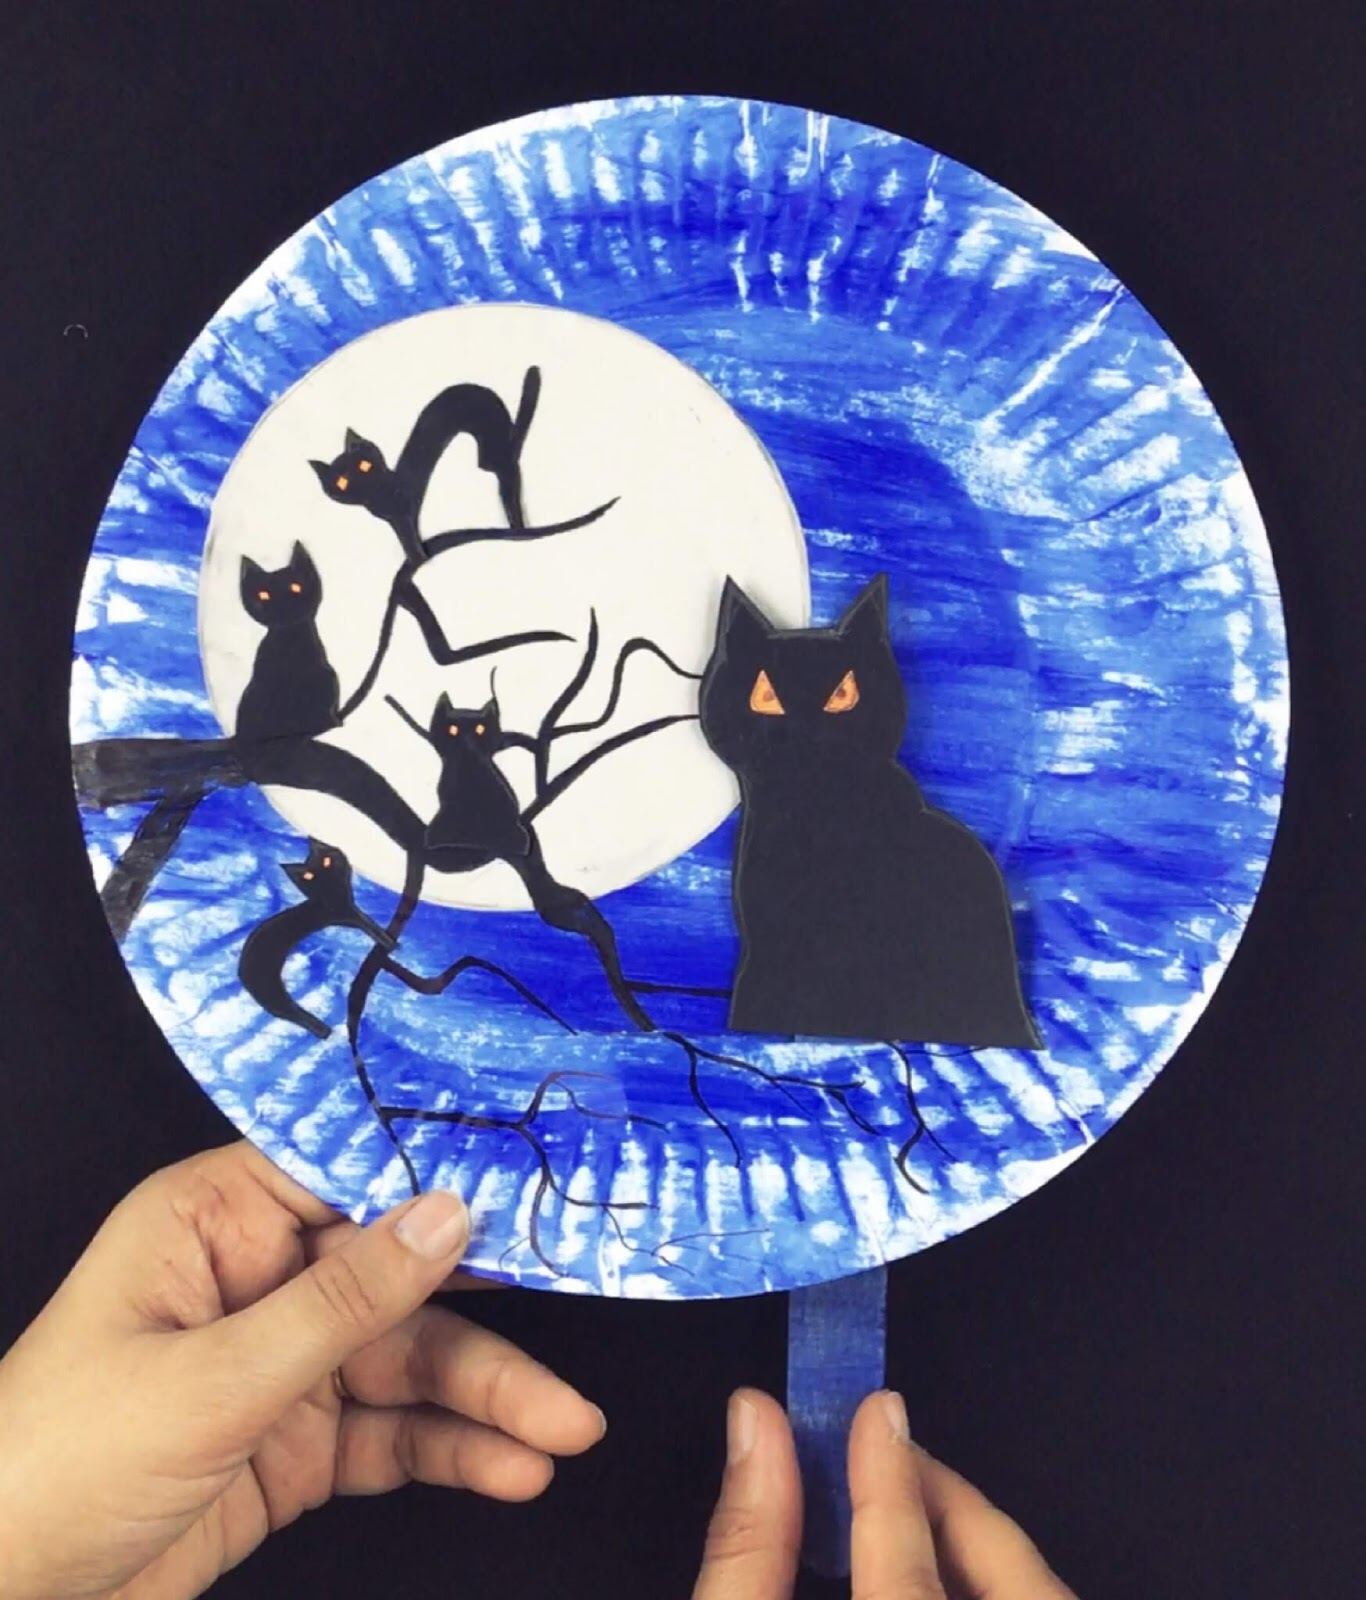 Halloween craft, kids craft, crafts for kids, preschool crafts, cat craft, animal craft, paper plate craft, spooky craft, fun craft, easy craft, black cat, mystical night, preschool craft, school craft, daycare craft, toddler craft, kids activities,